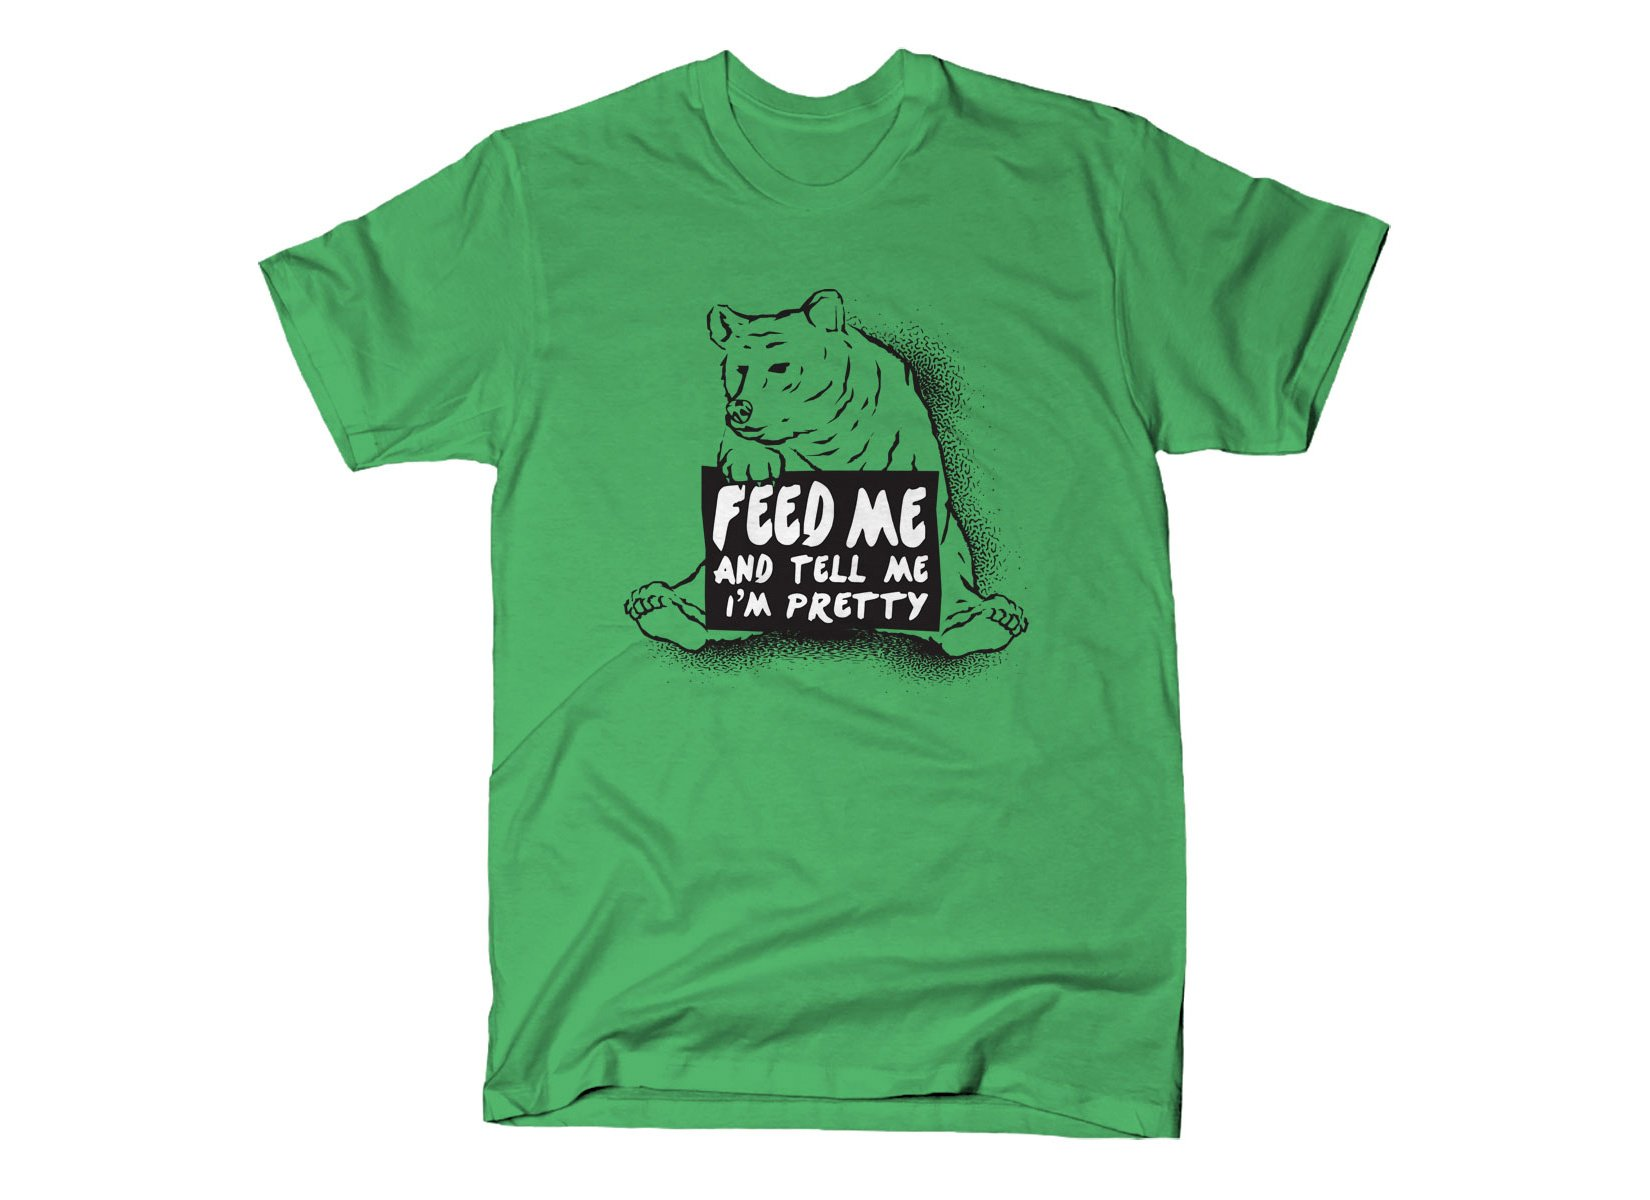 Feed Me on Mens T-Shirt